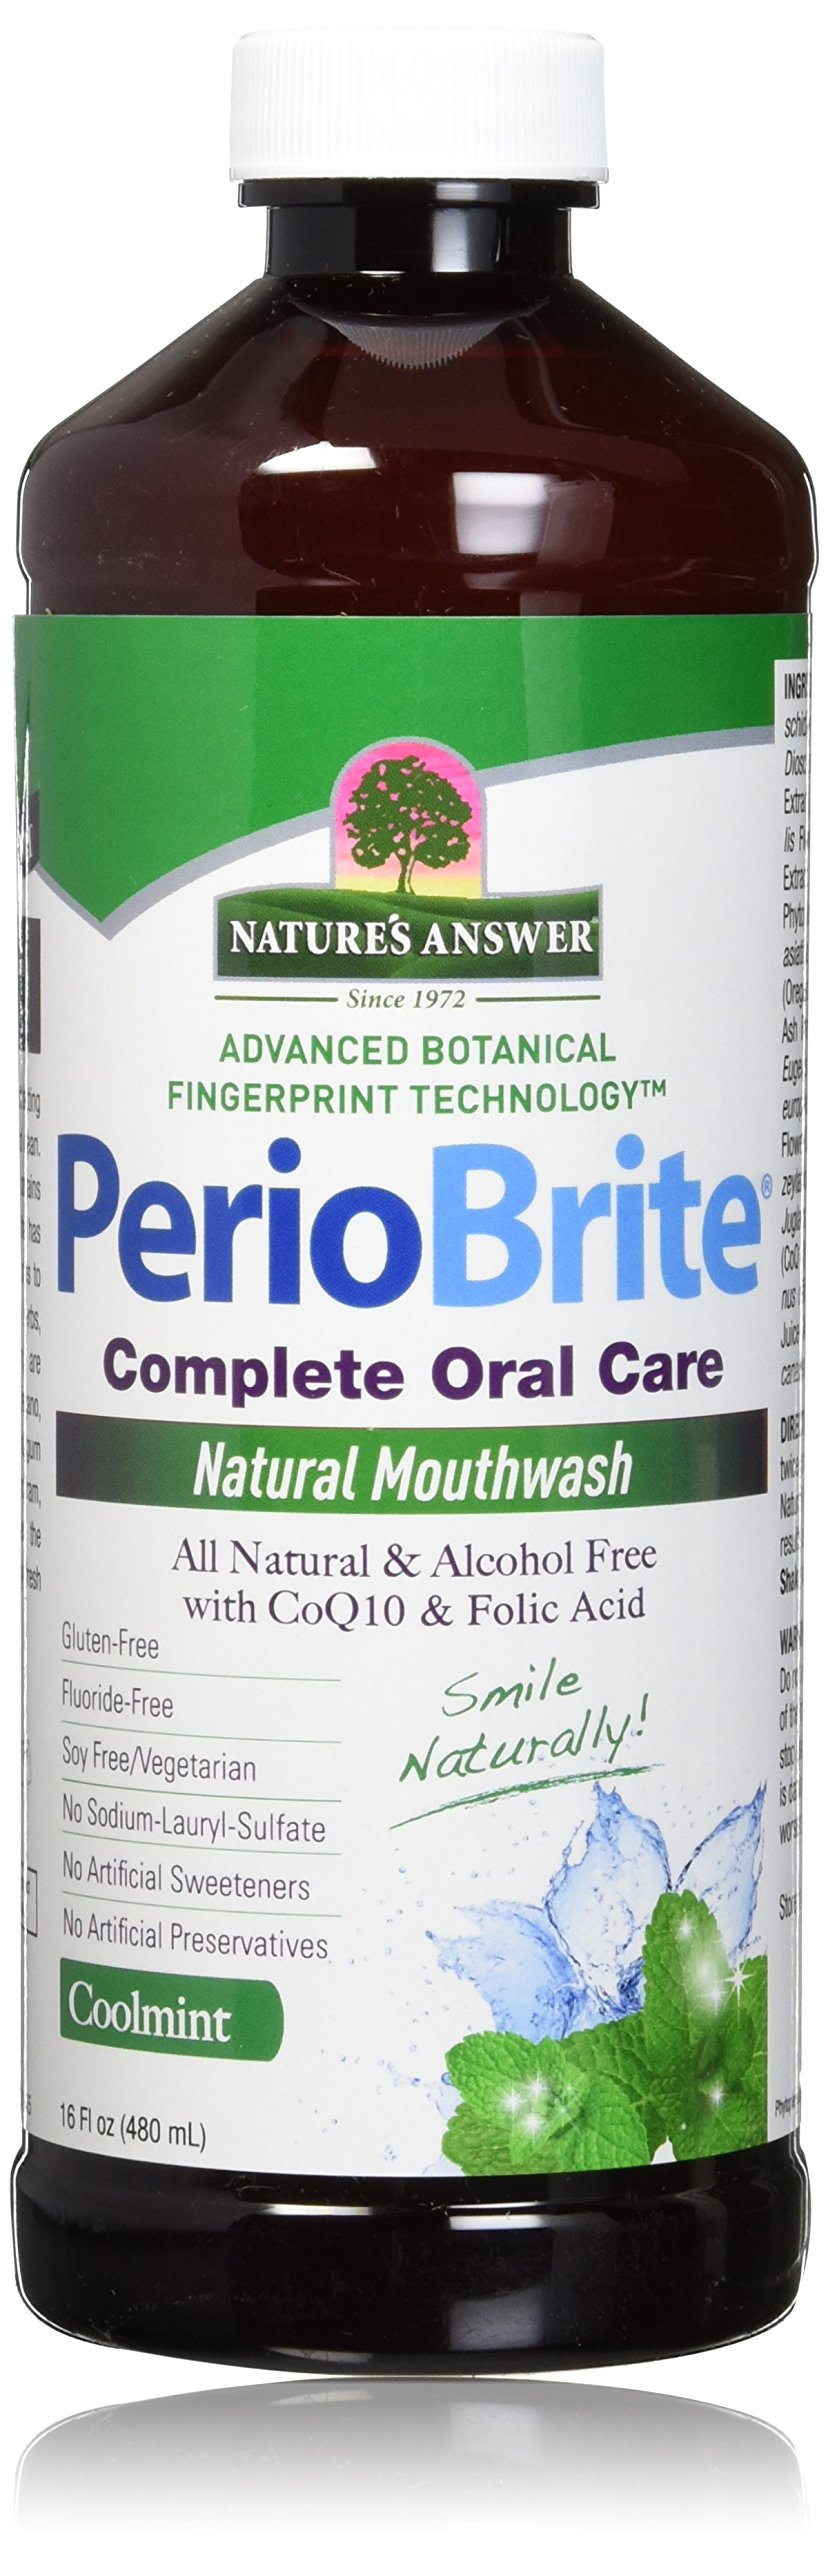 Nature's Answer Periobrite Alcohol-Free Mouthwash, Cool Mint, 16 Ounce, 2 Count